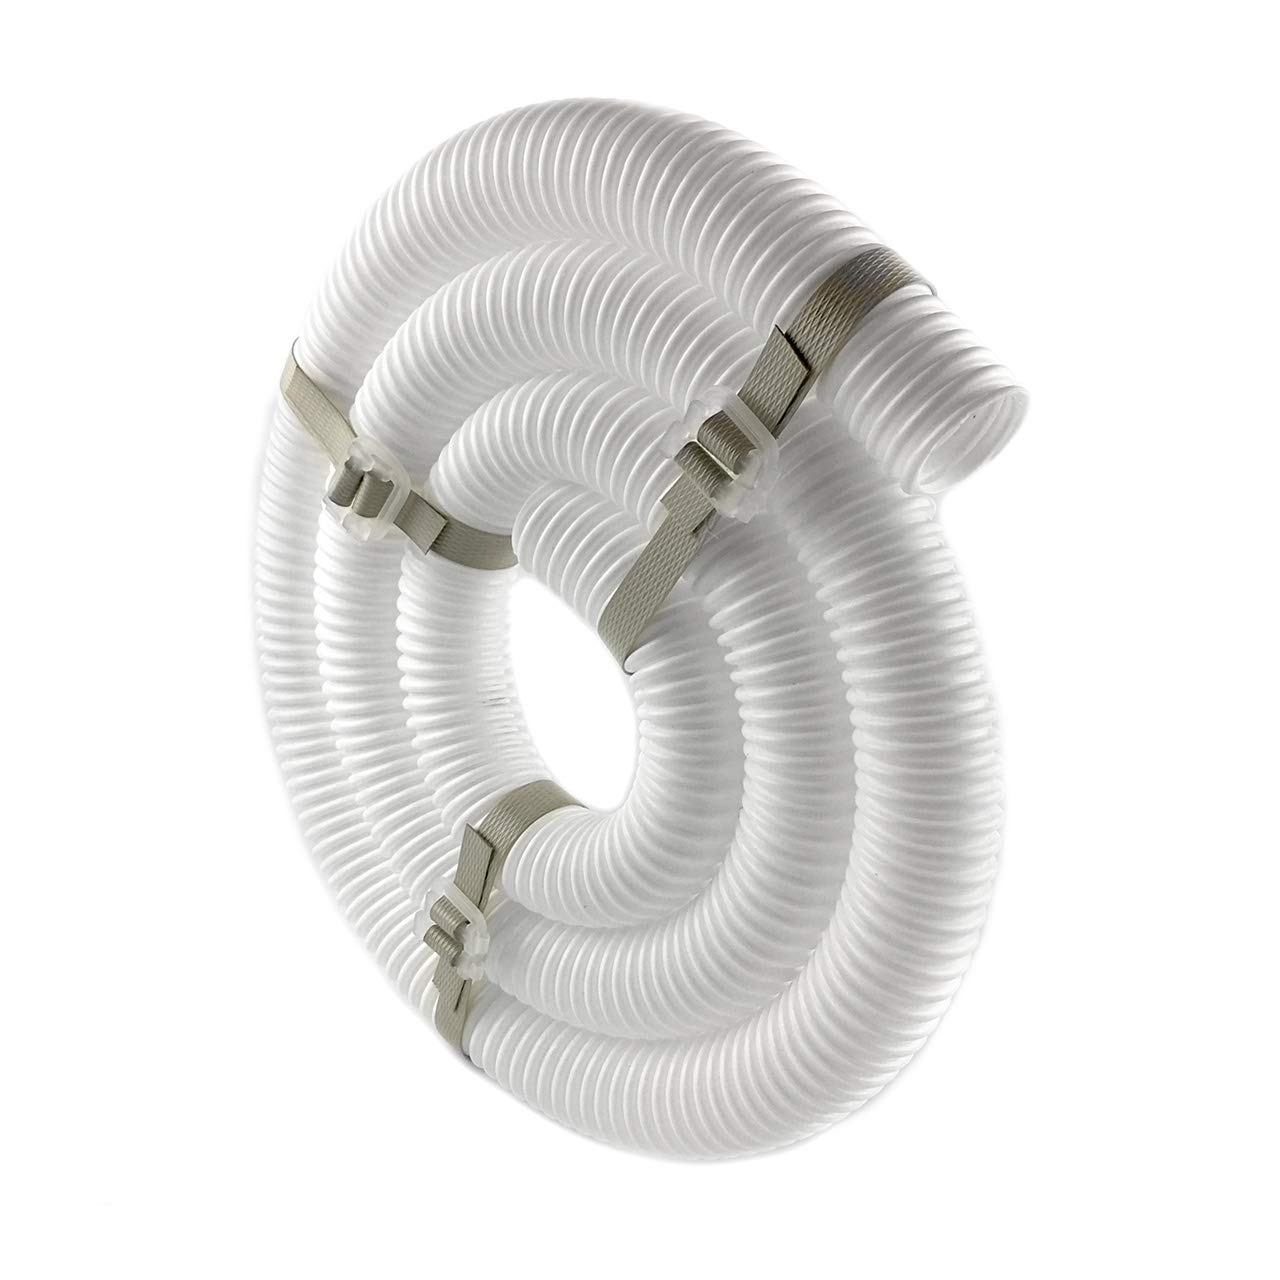 Ximoon Pool Cleaner 6-Ft Cuffless Feed Hose Replacement for Polaris 360 Cleaner 9-100-3102